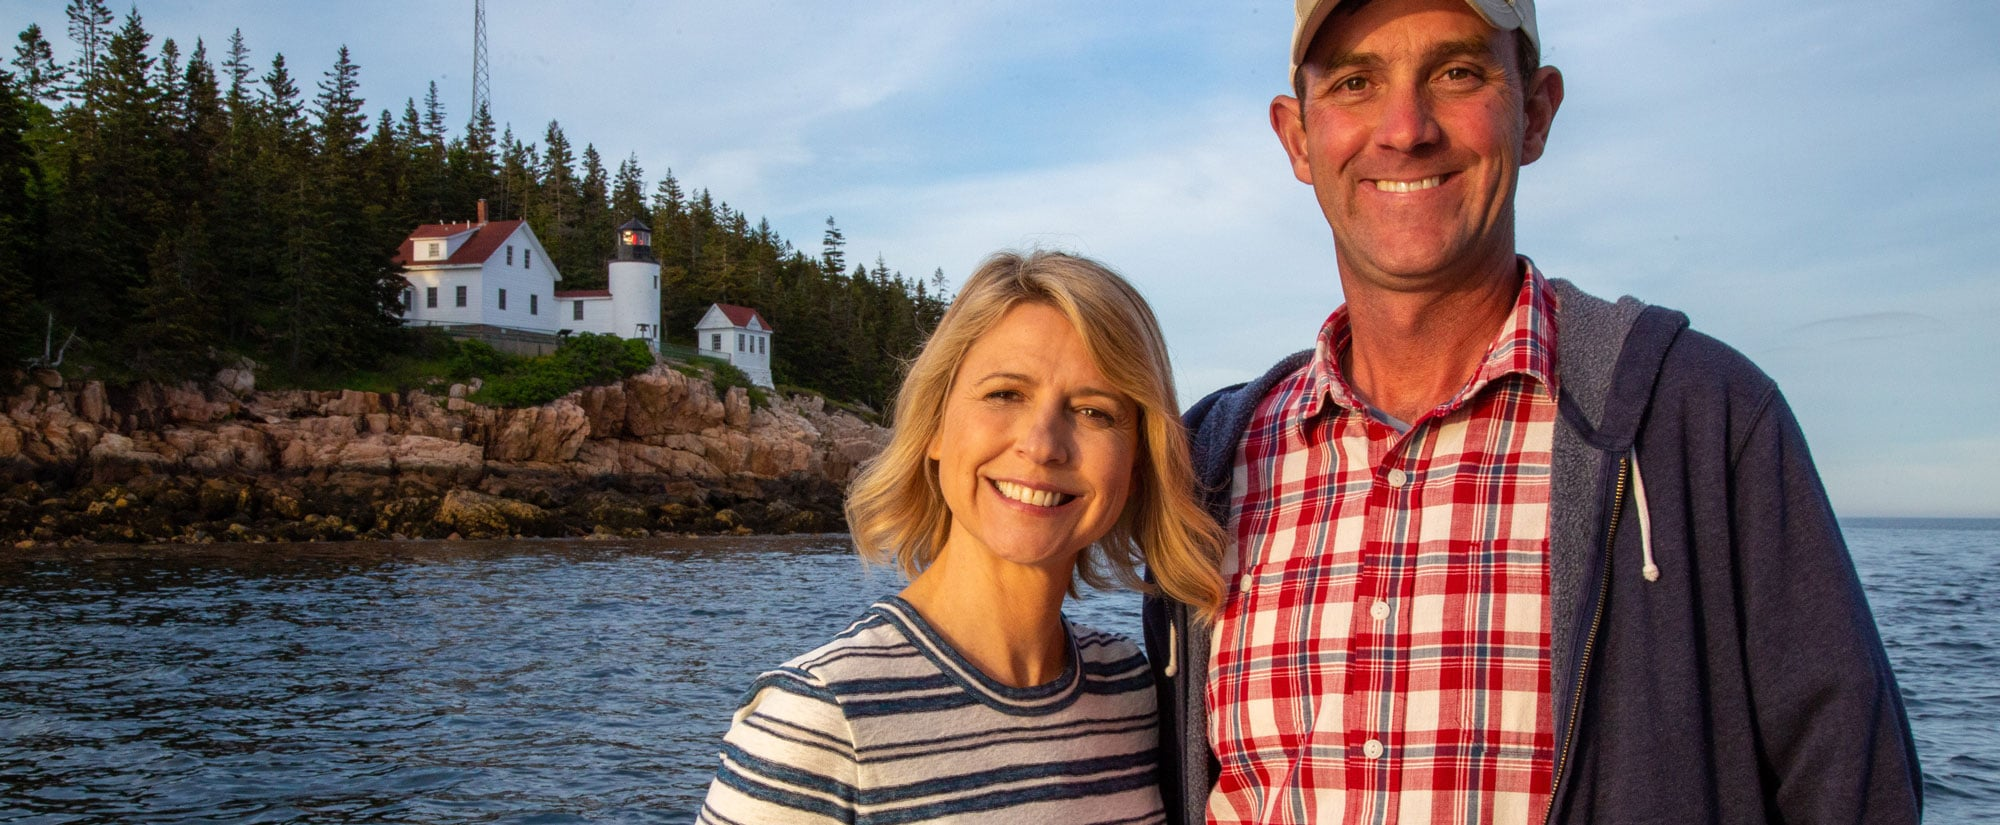 Places To Love - Maine - Samantha Brown